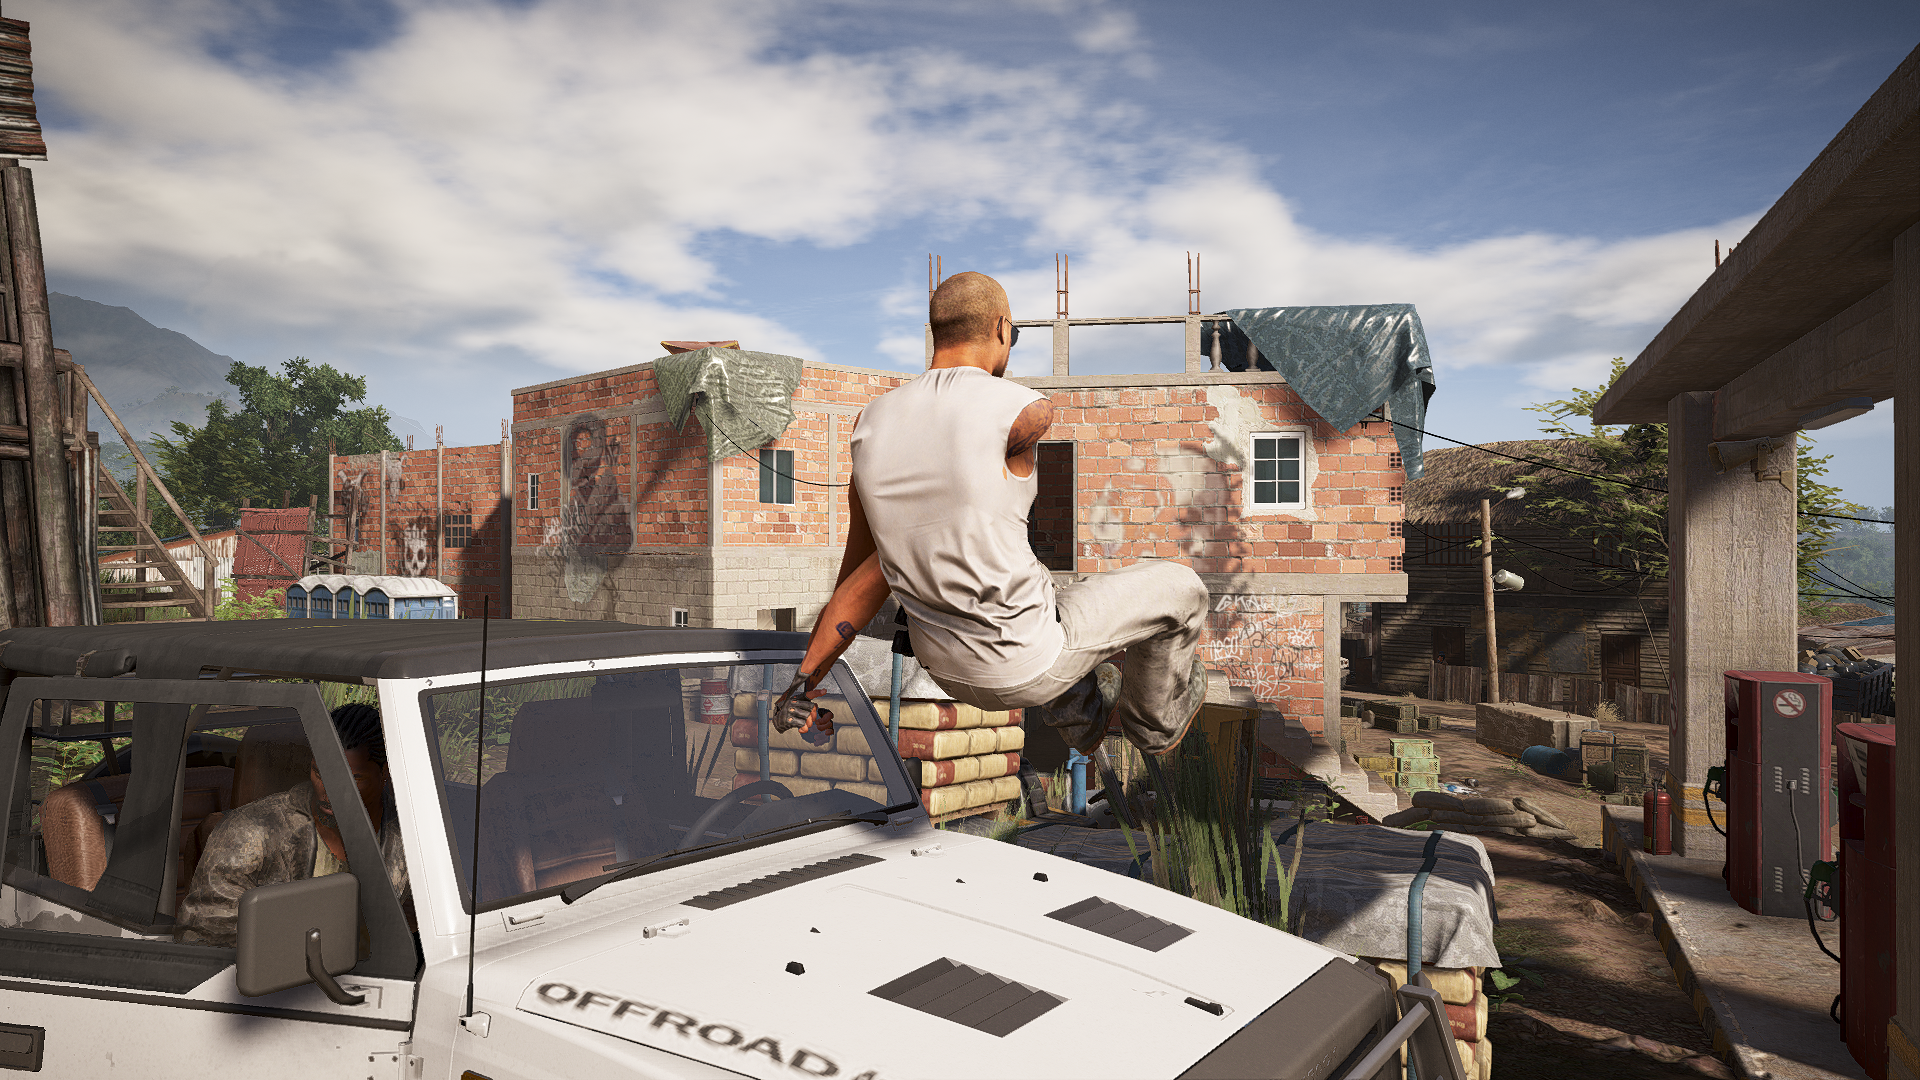 Tom Clancy's Ghost Recon  Wildlands Screenshot 2019.08.29 - 23.04.05.20.png - Tom Clancy's Ghost Recon: Wildlands